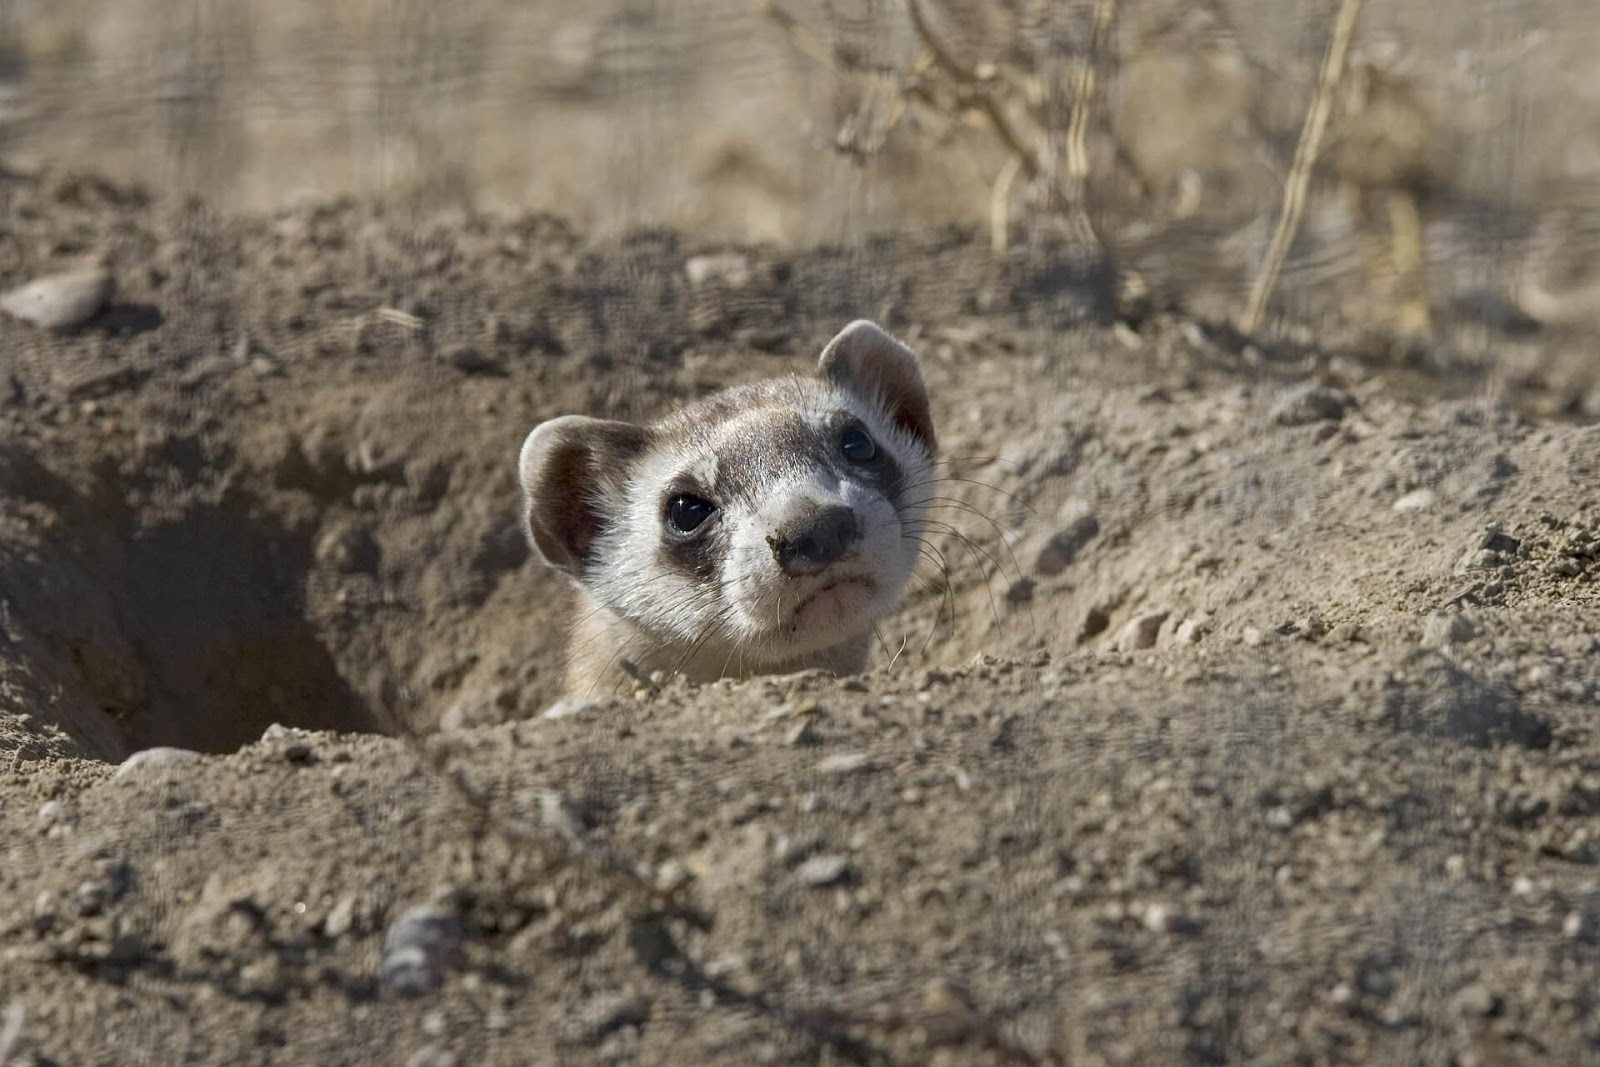 A black-footed ferret poking its head out of a hole